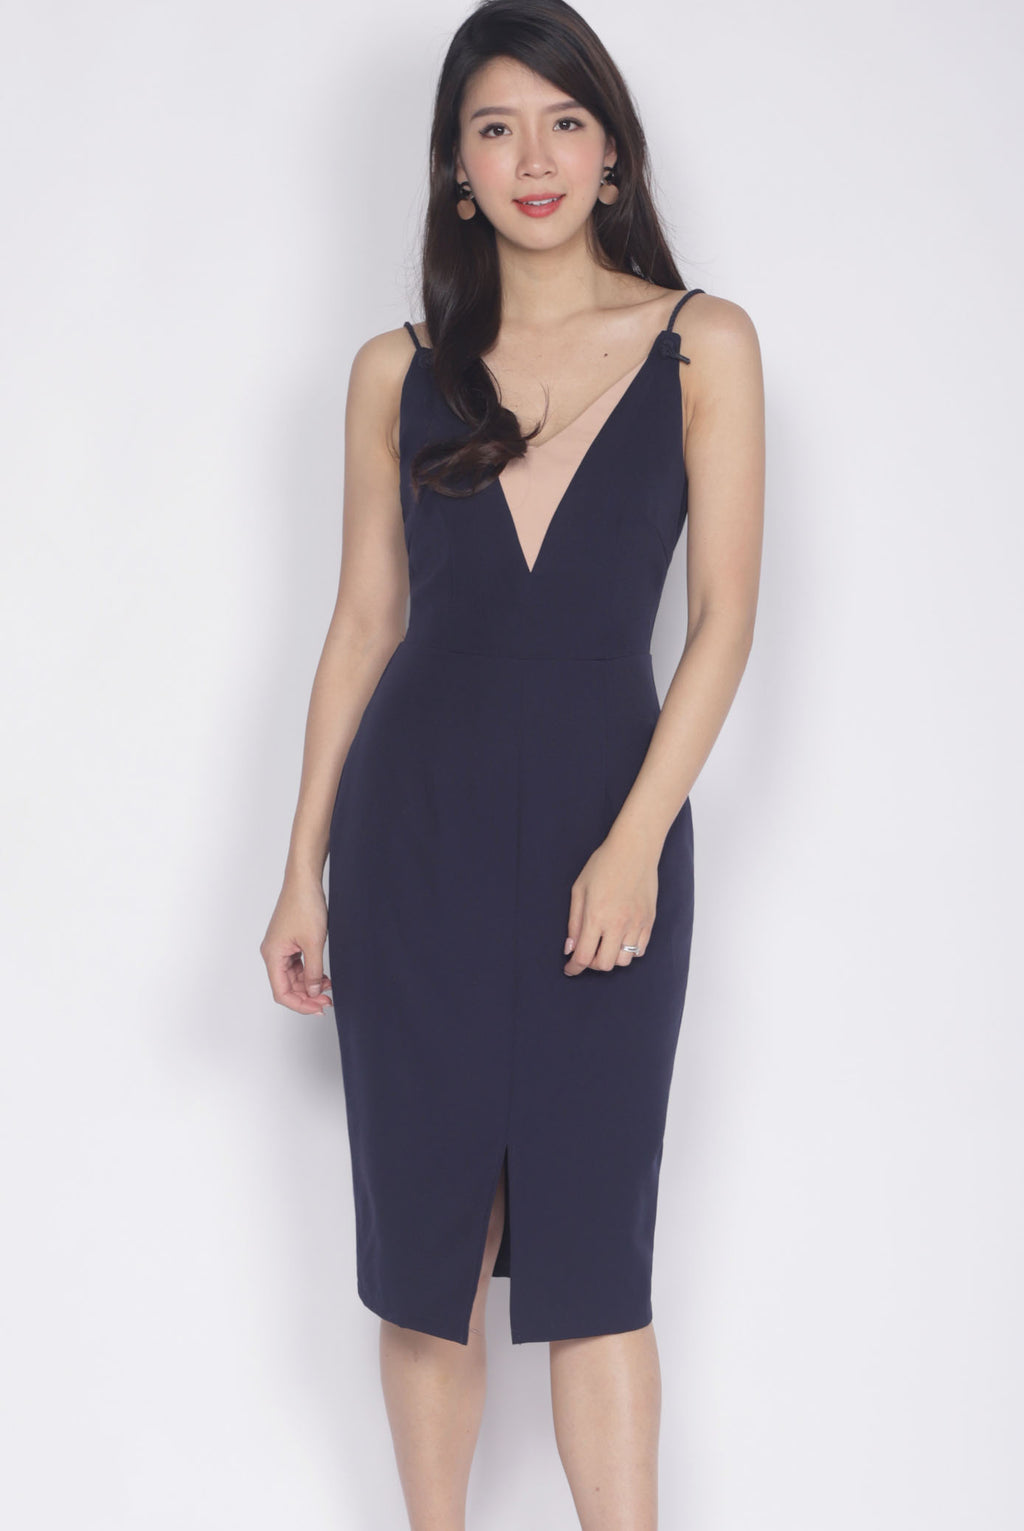 Dallis Rope Strap Dress In Navy Blue